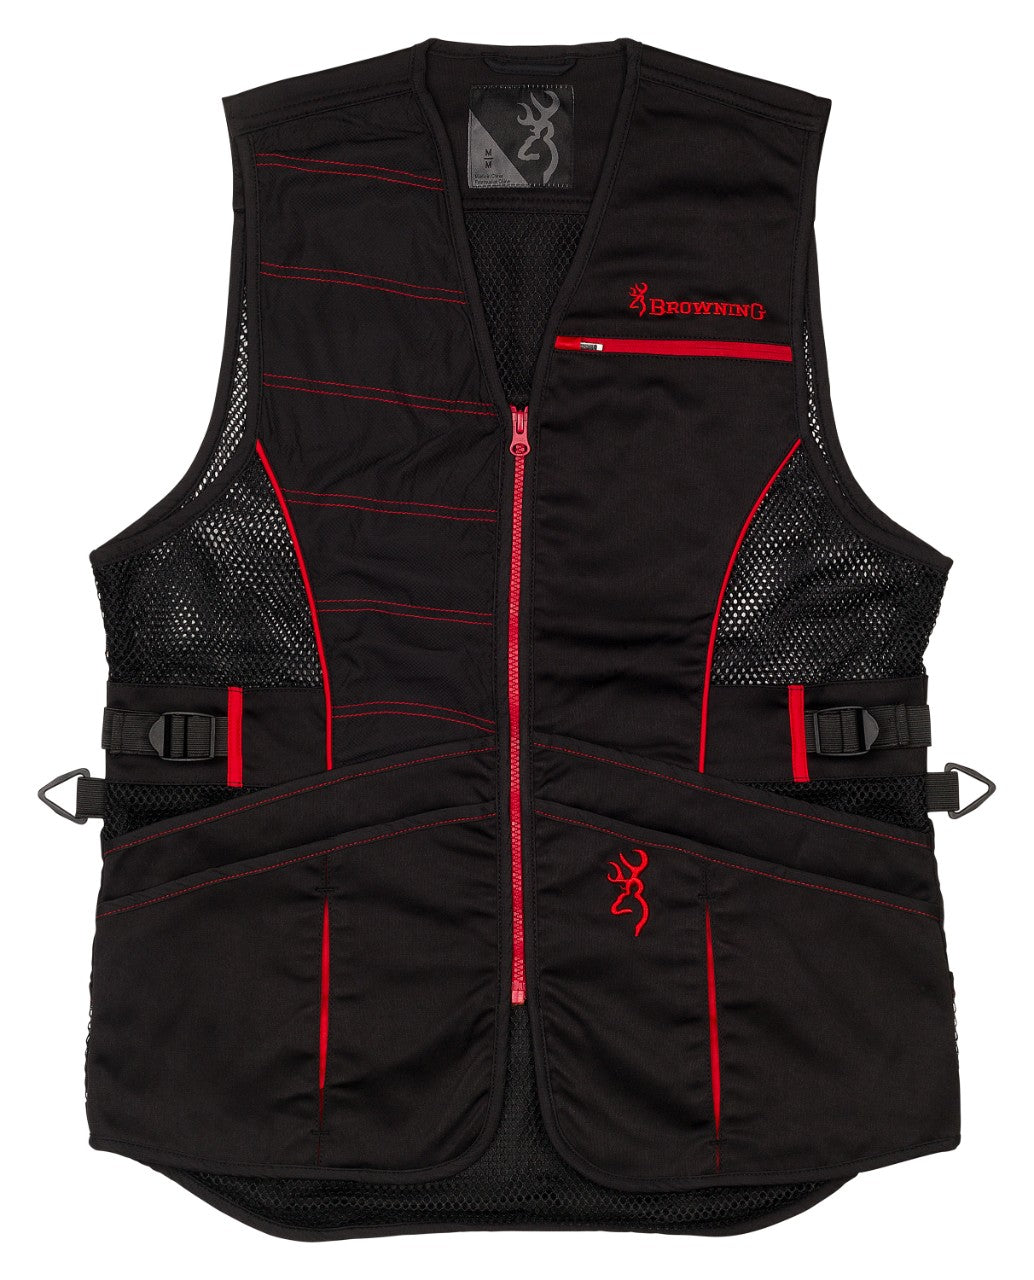 Ace Shooting Vest for Her